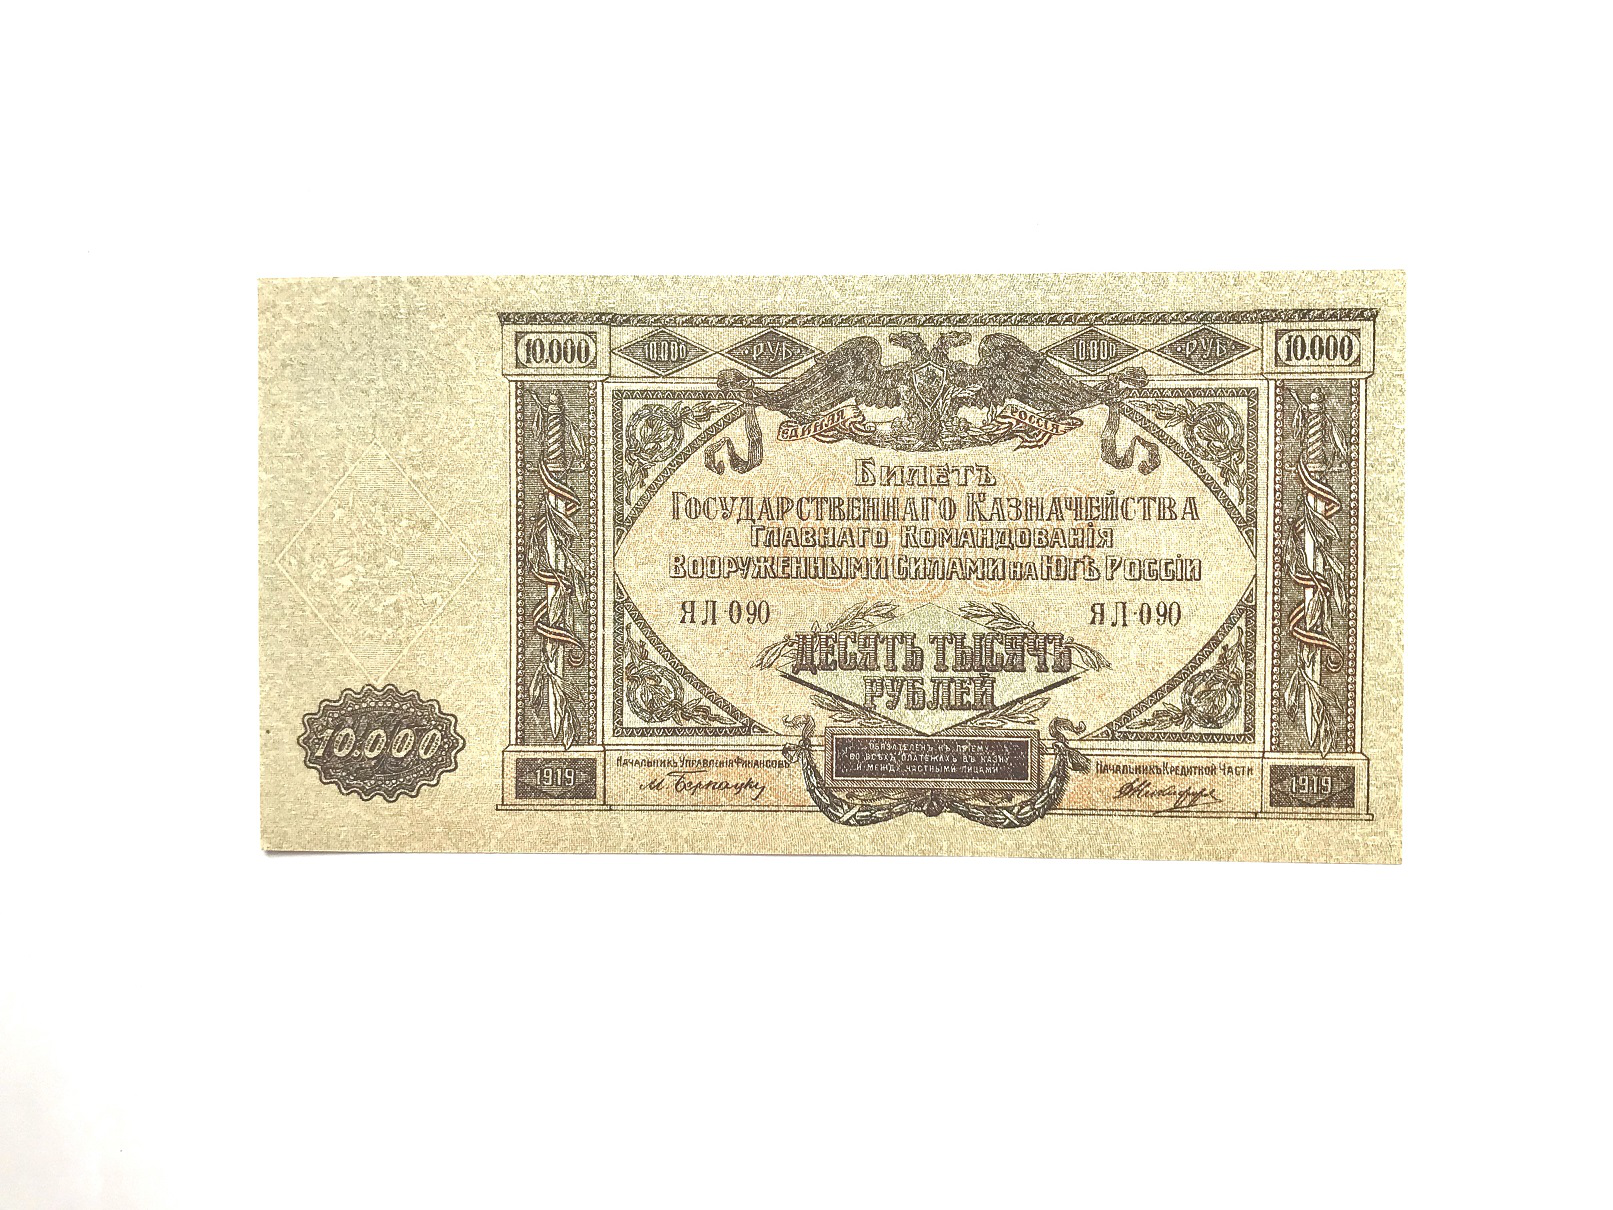 10,000 rubles banknote, 1919, Russia | Hobby Keeper Articles